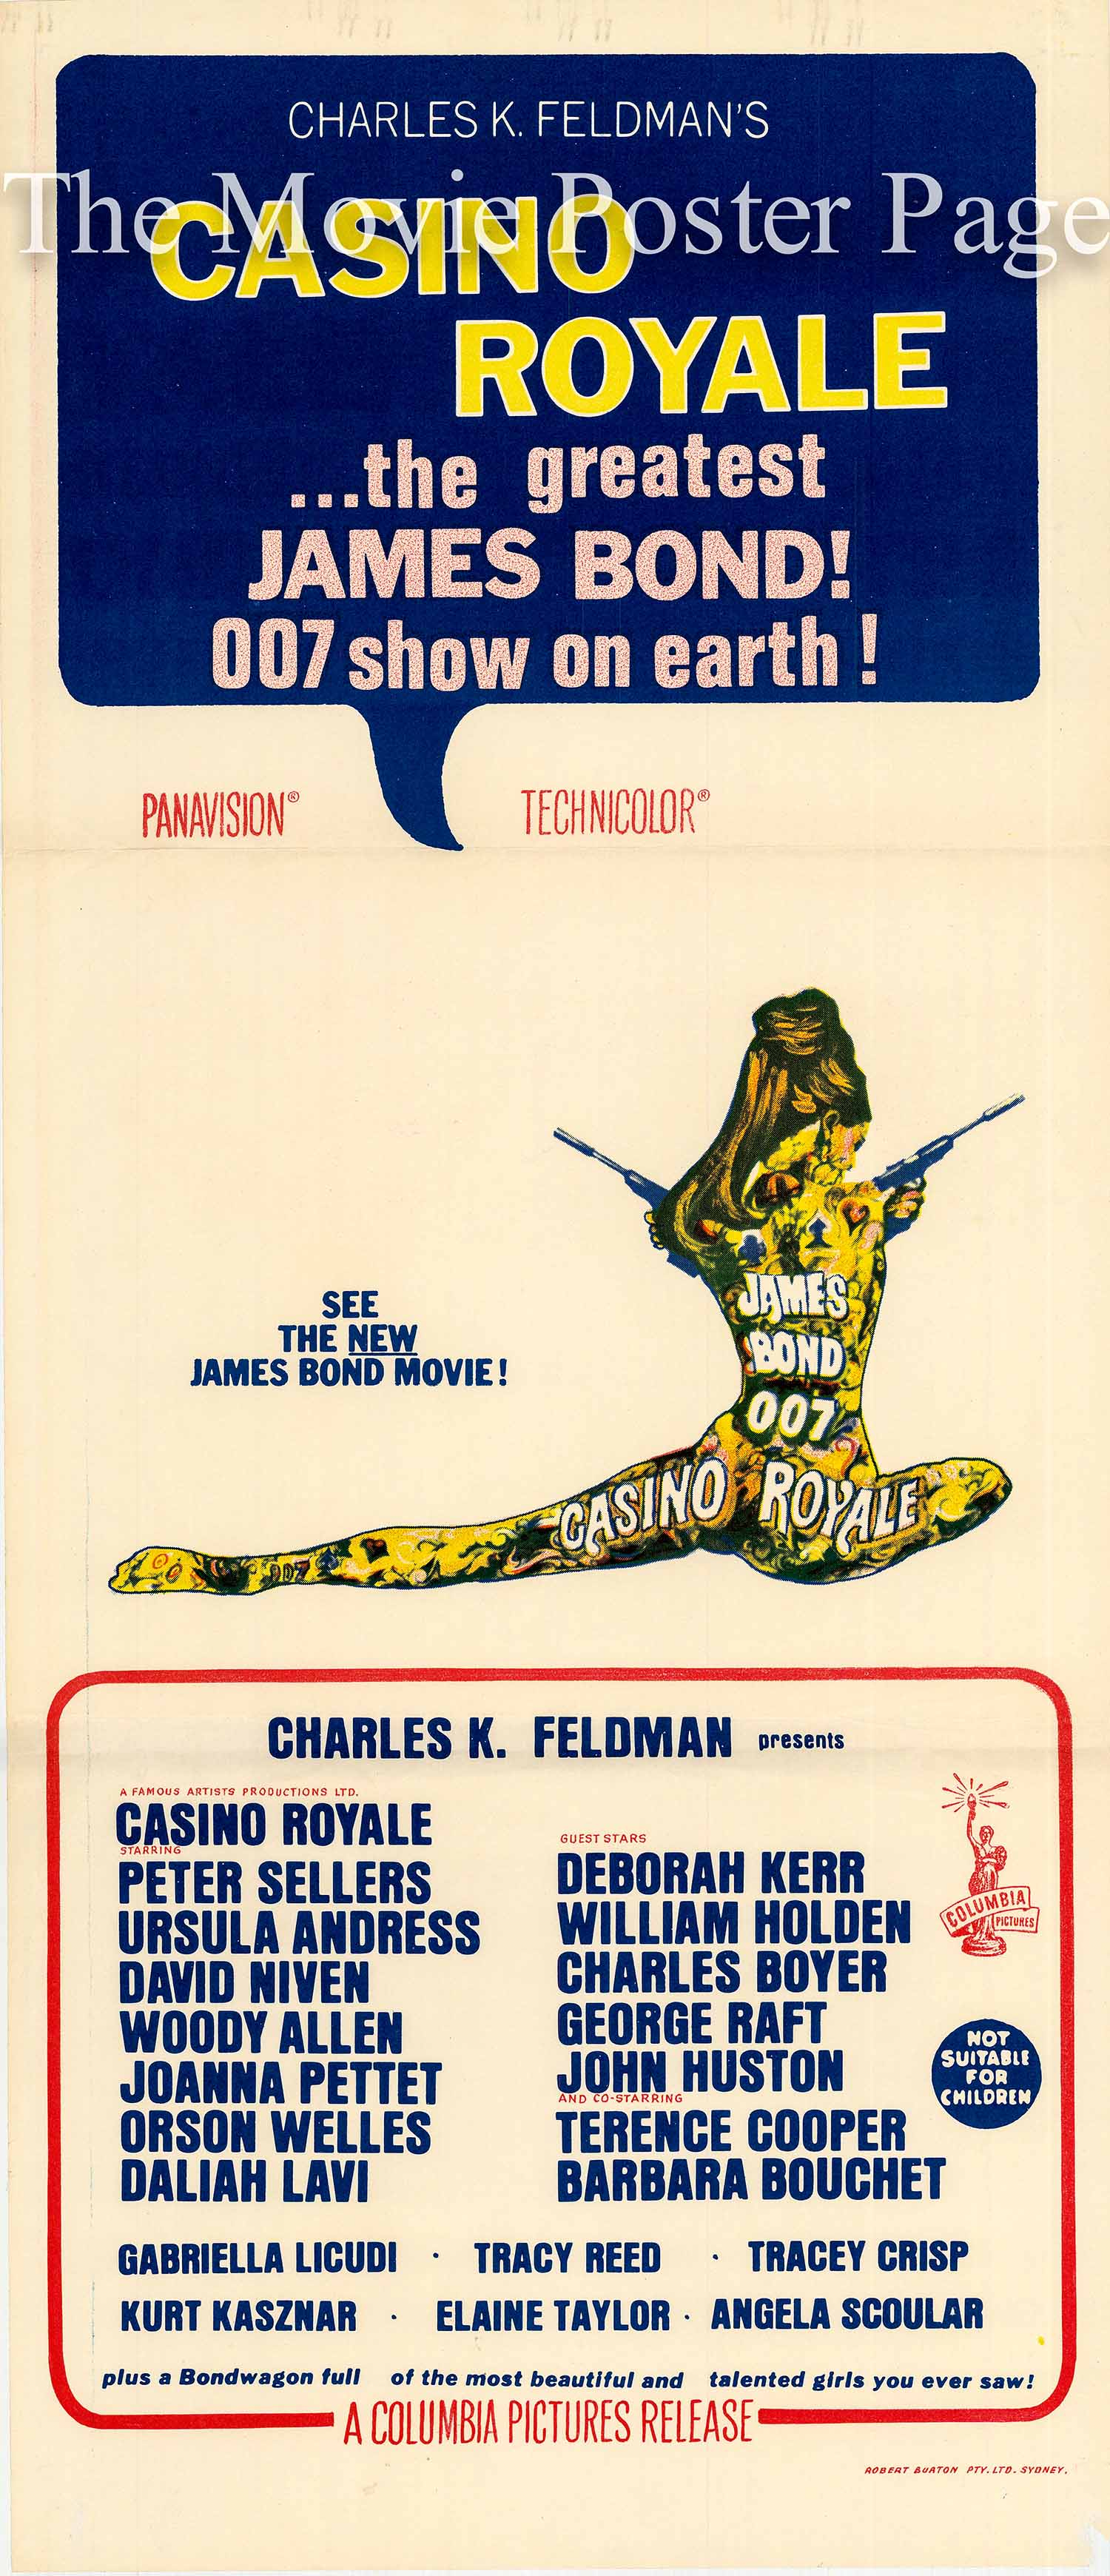 This is an image of an Australian daybill promotional poster for the 1967 Charles K. Feldman Film Casono Royale, starring Woody Allen and Peter Sellers.